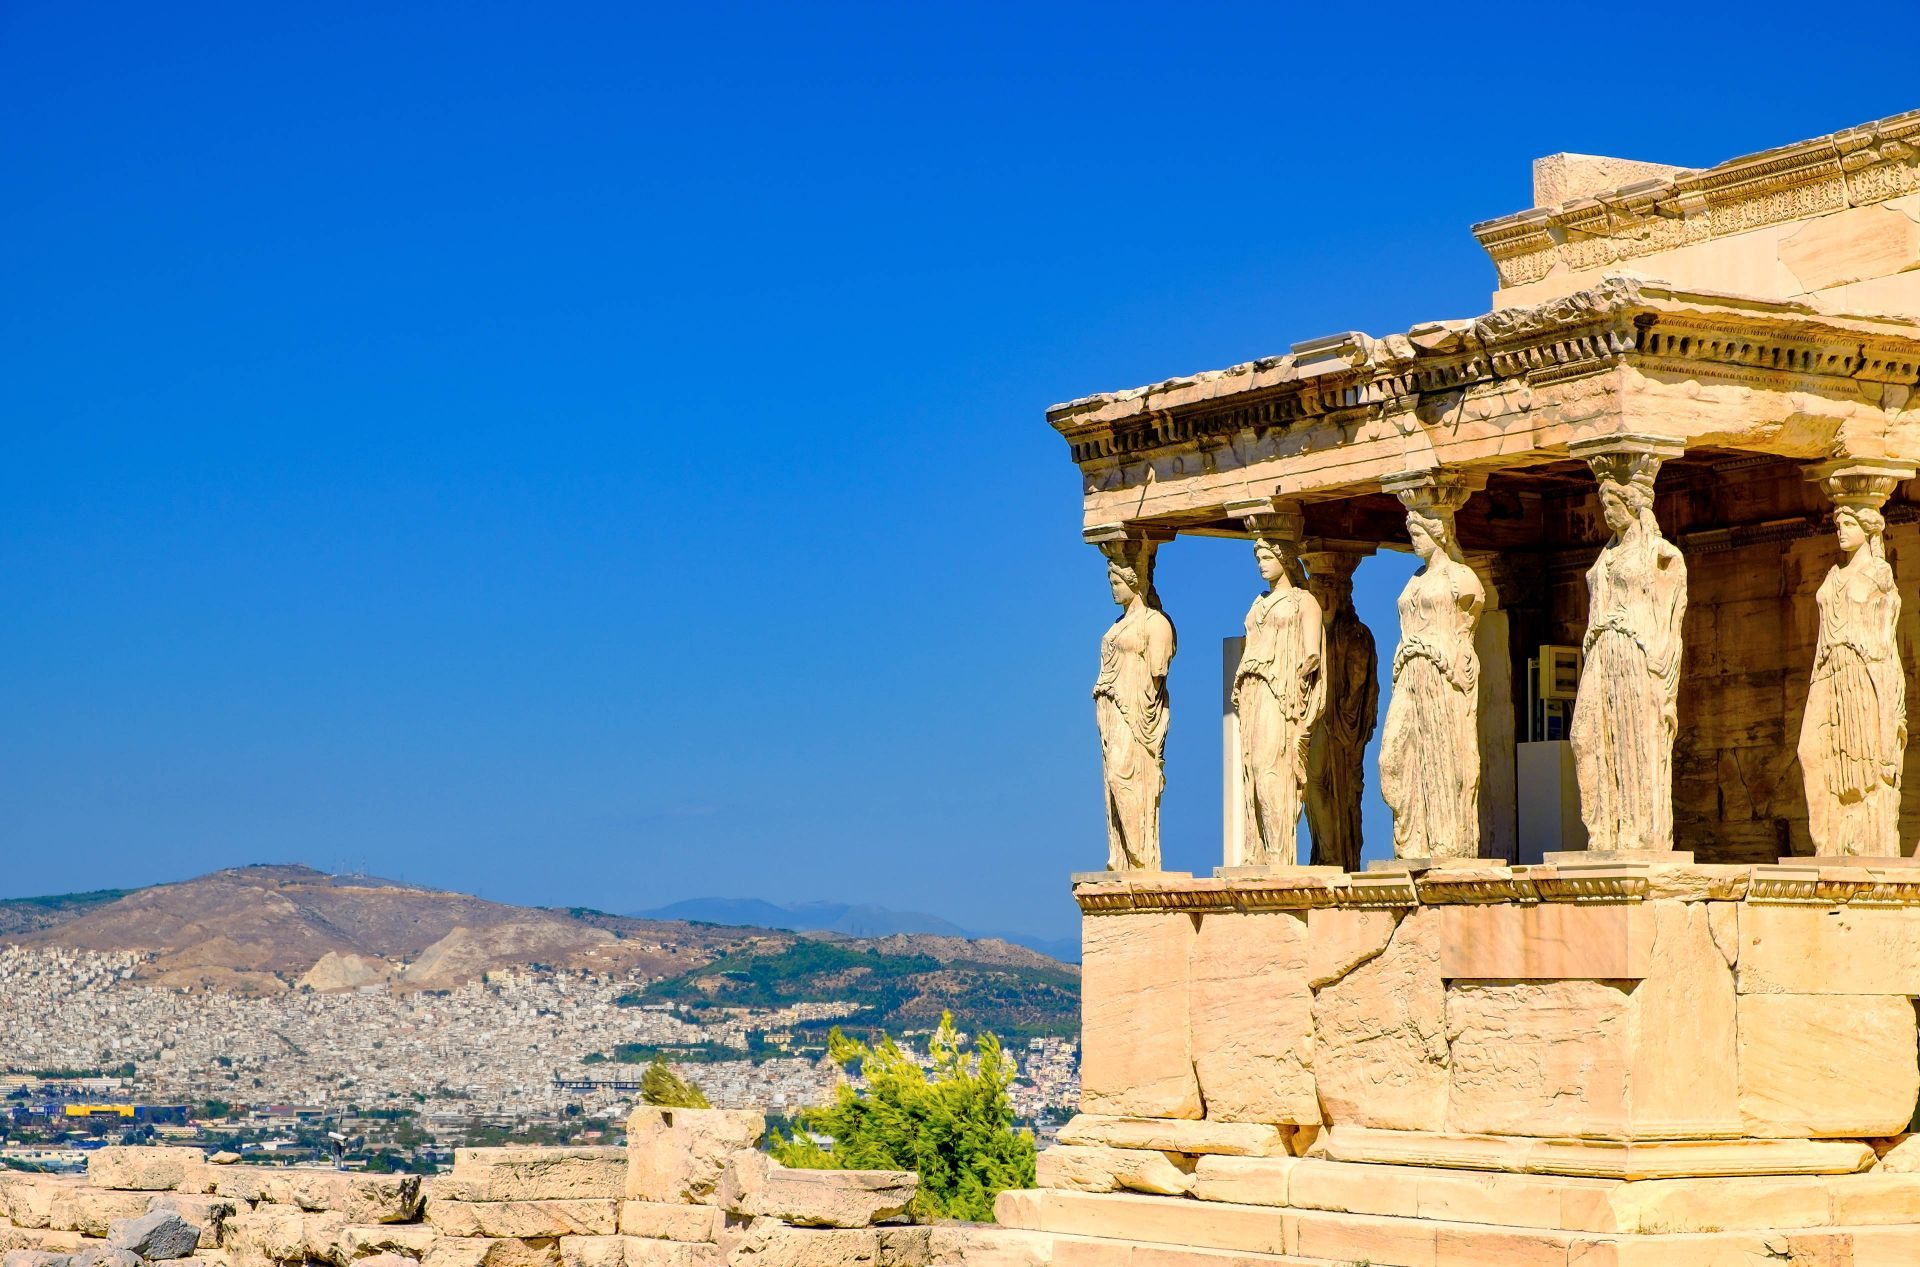 Attica Greece: Acropolis, the most famous monument in Greece